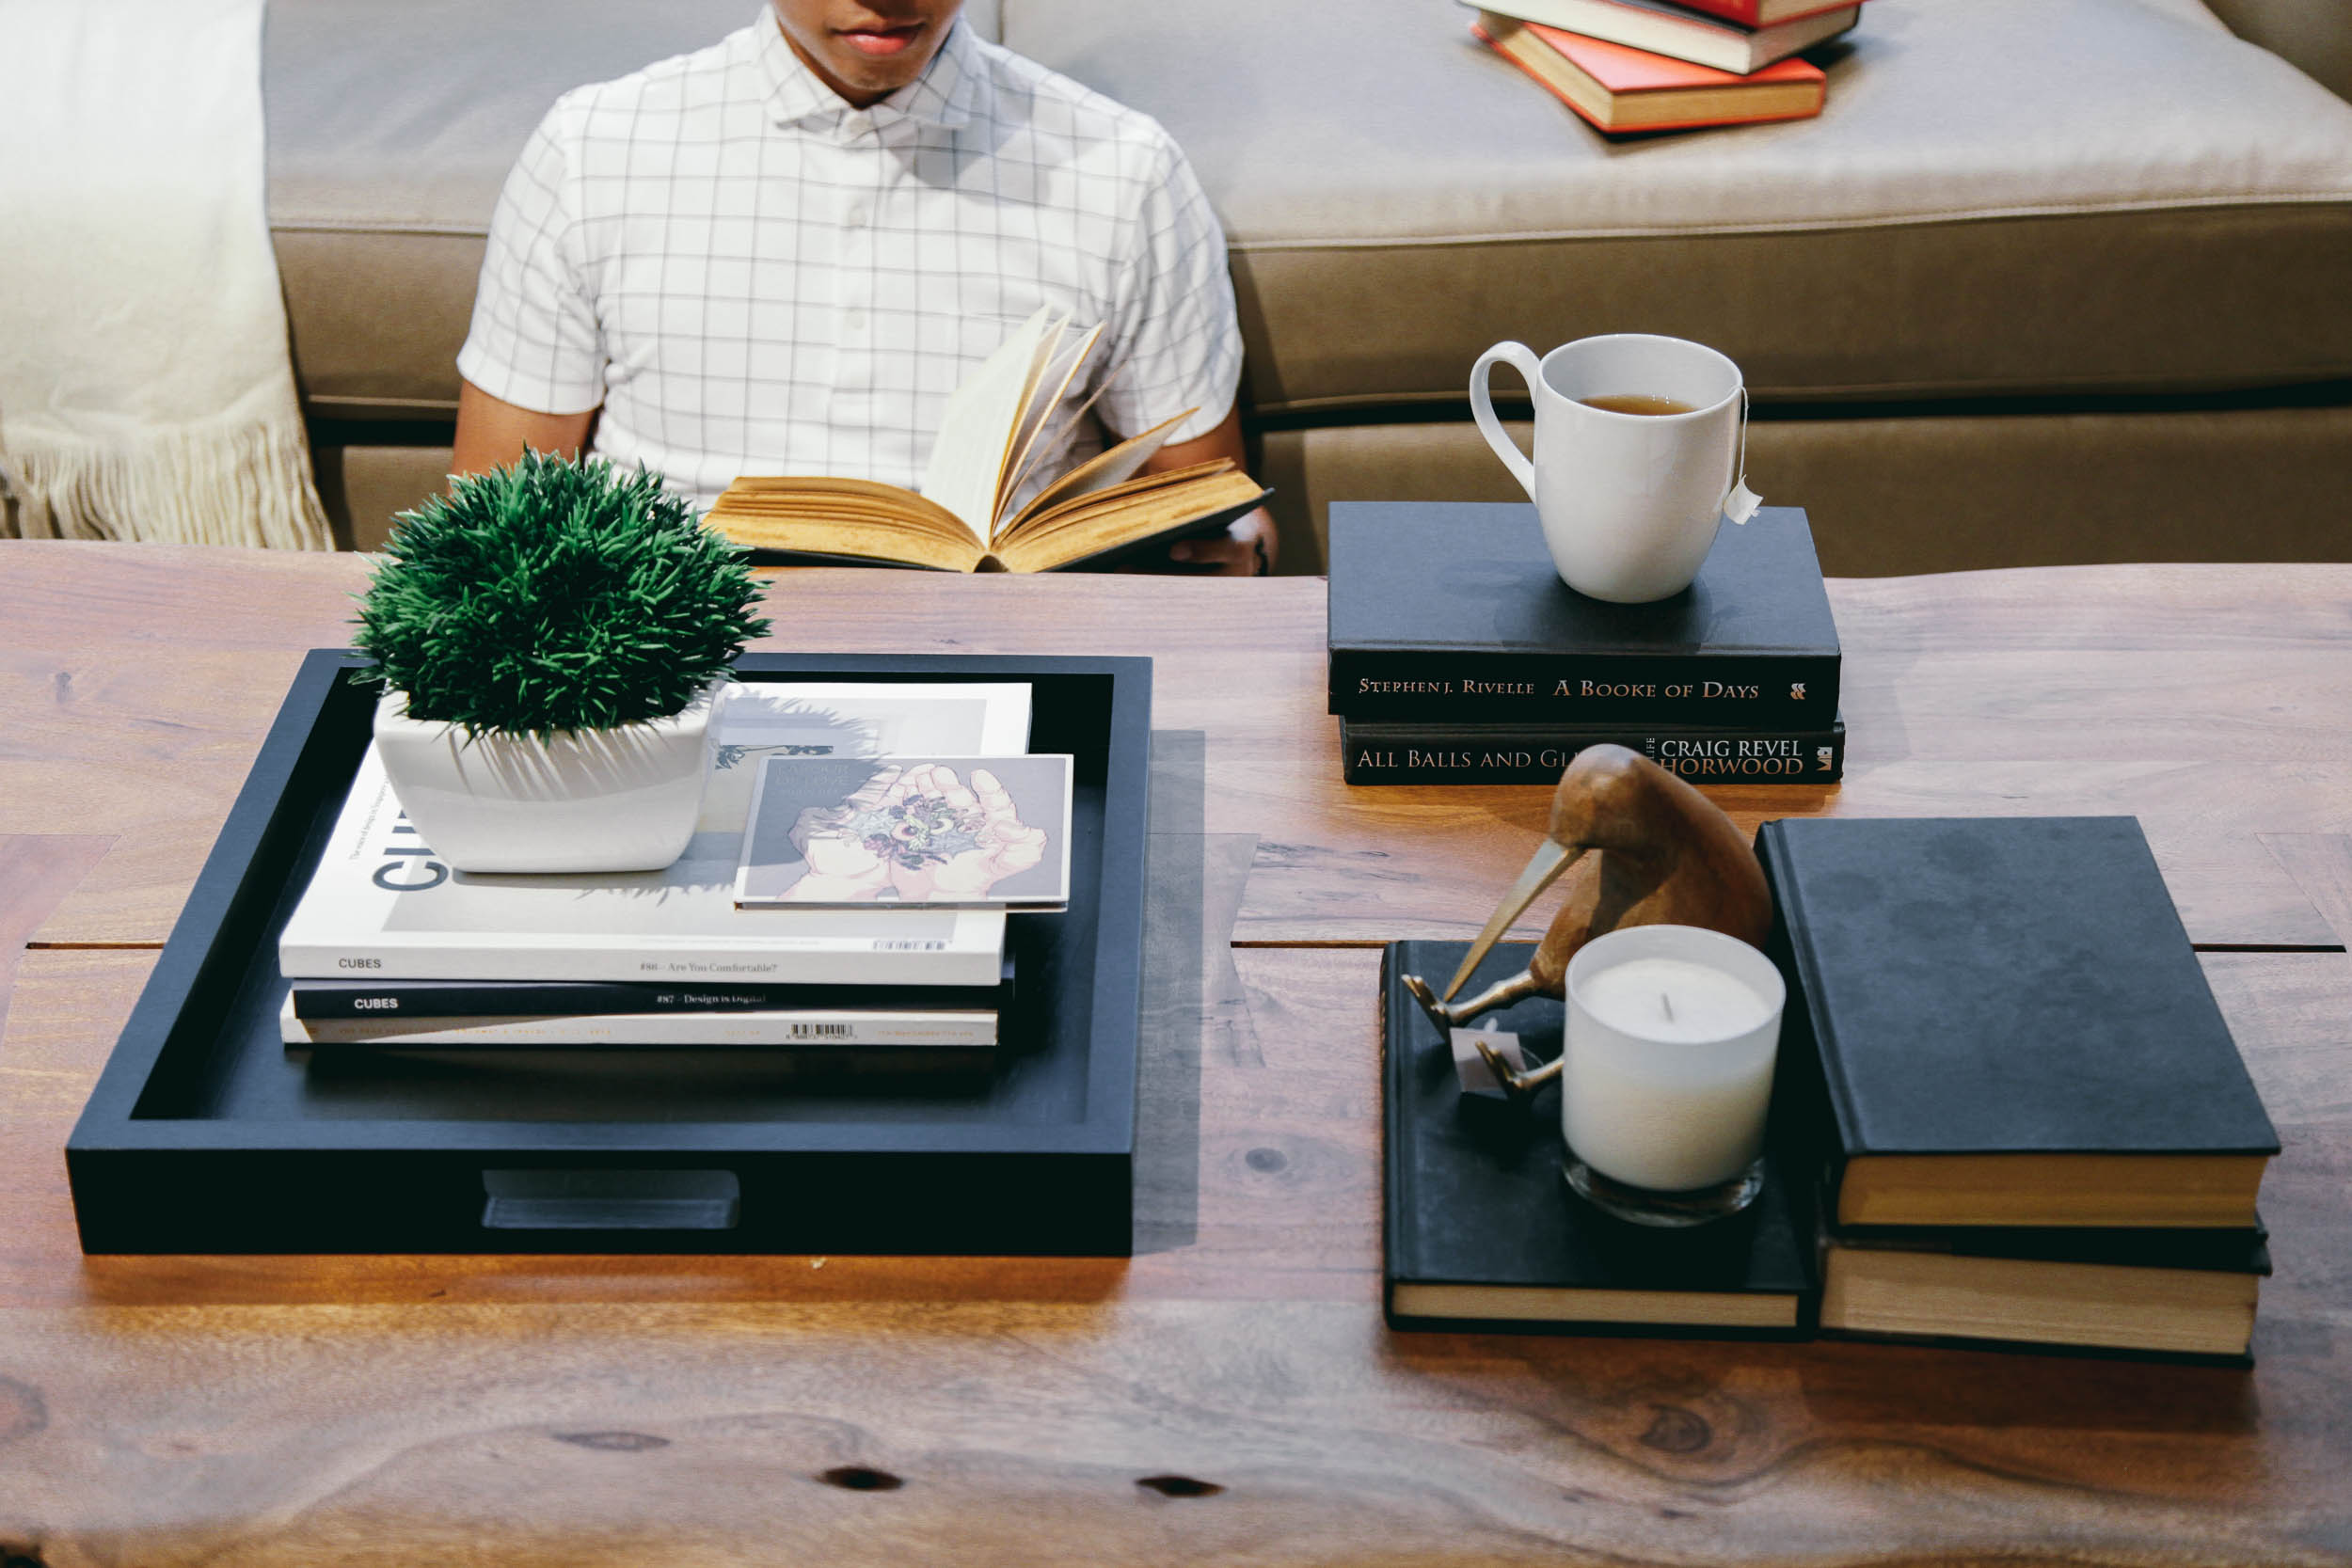 You are your Coffee Table - This oft-used idiom reminds one not to judge a something (or someone) by its outward appearance alone. However, a book's cover serves an important task – to convey the vibe of its contents to whoever picks it up to peruse.